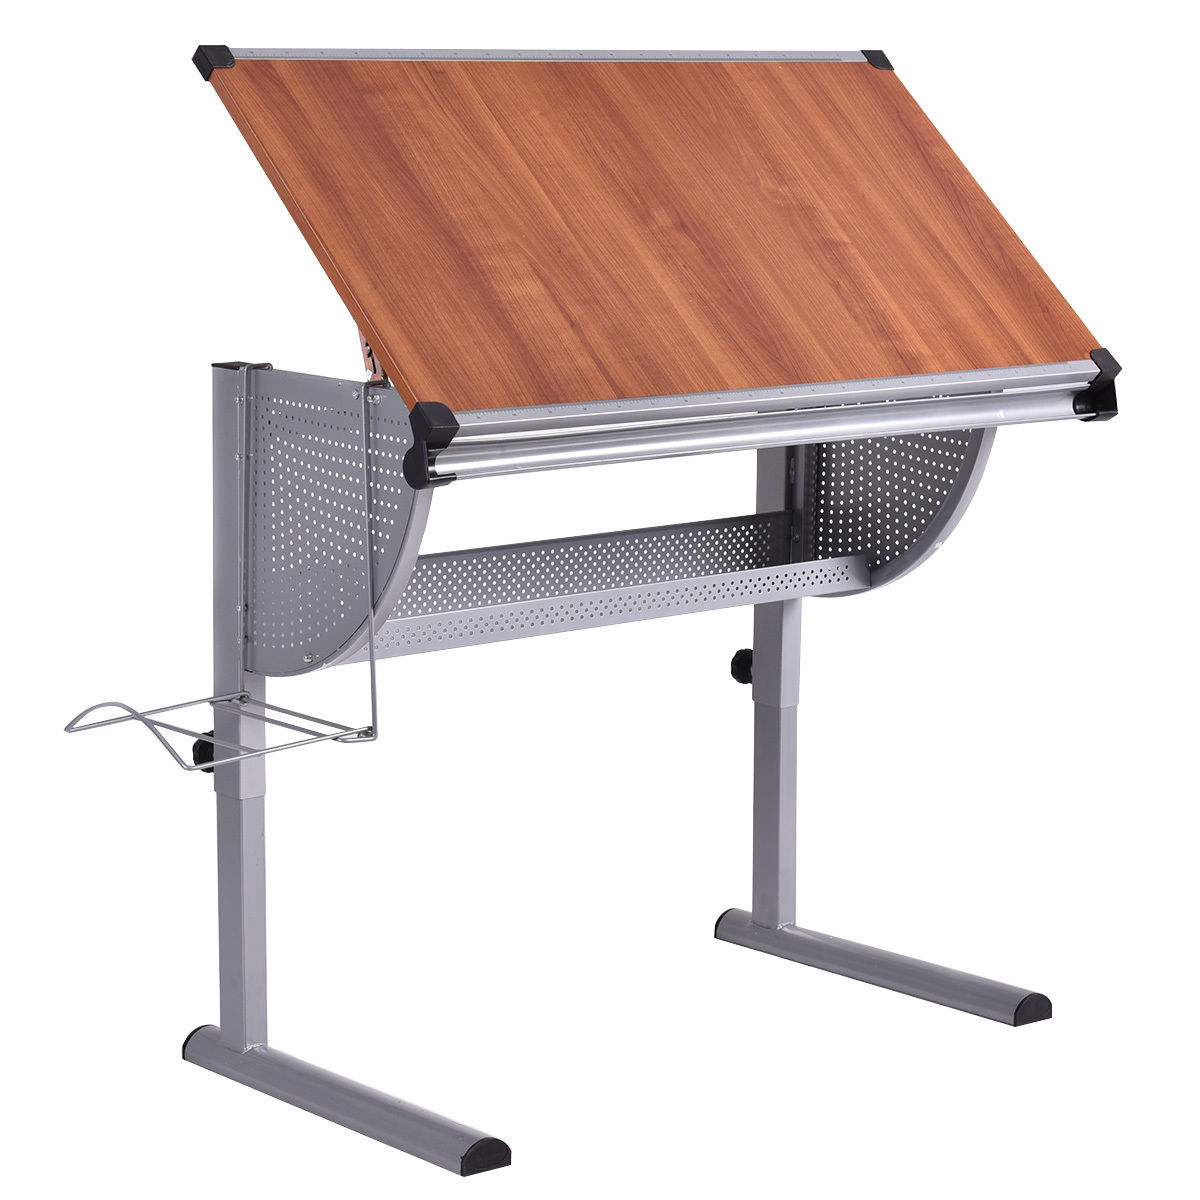 Adjustable Height Drafting Table Adjustable Drafting Table Drawing Desk Art Craft